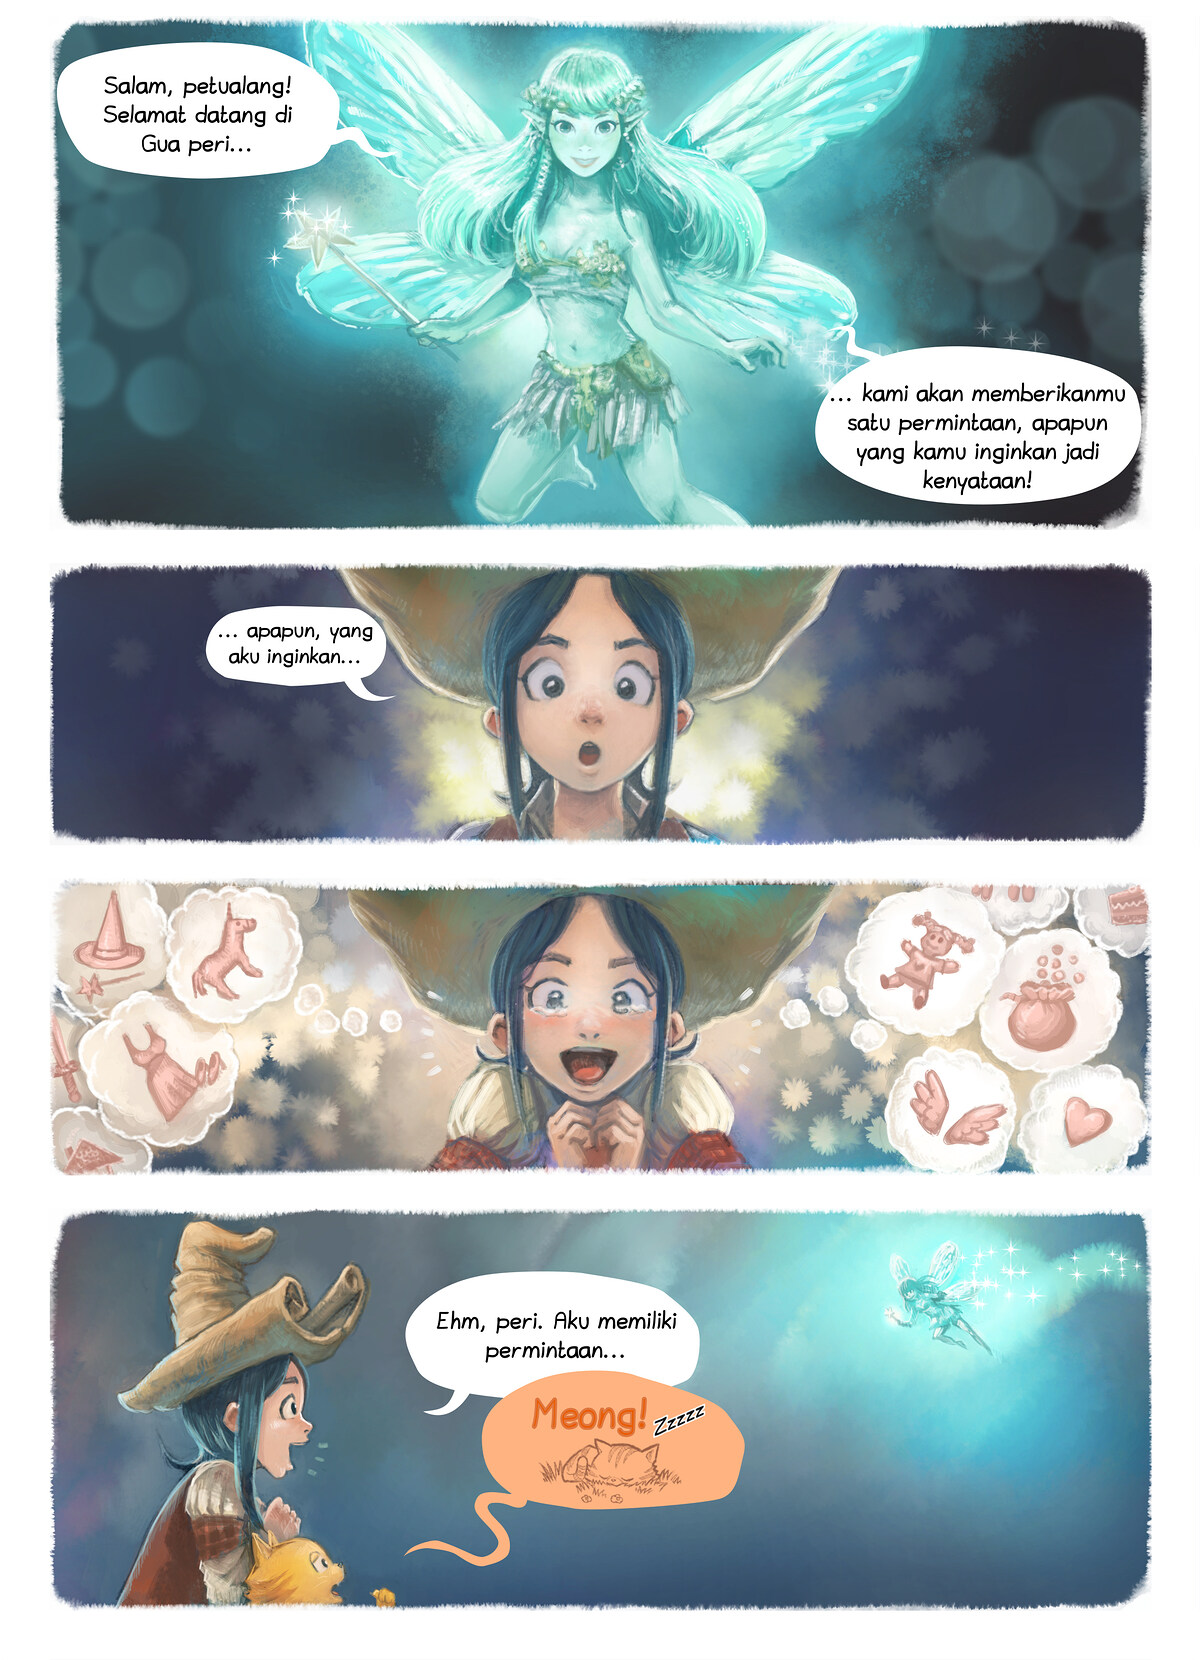 A webcomic page of Pepper&Carrot, episode 7 [id], halaman 4